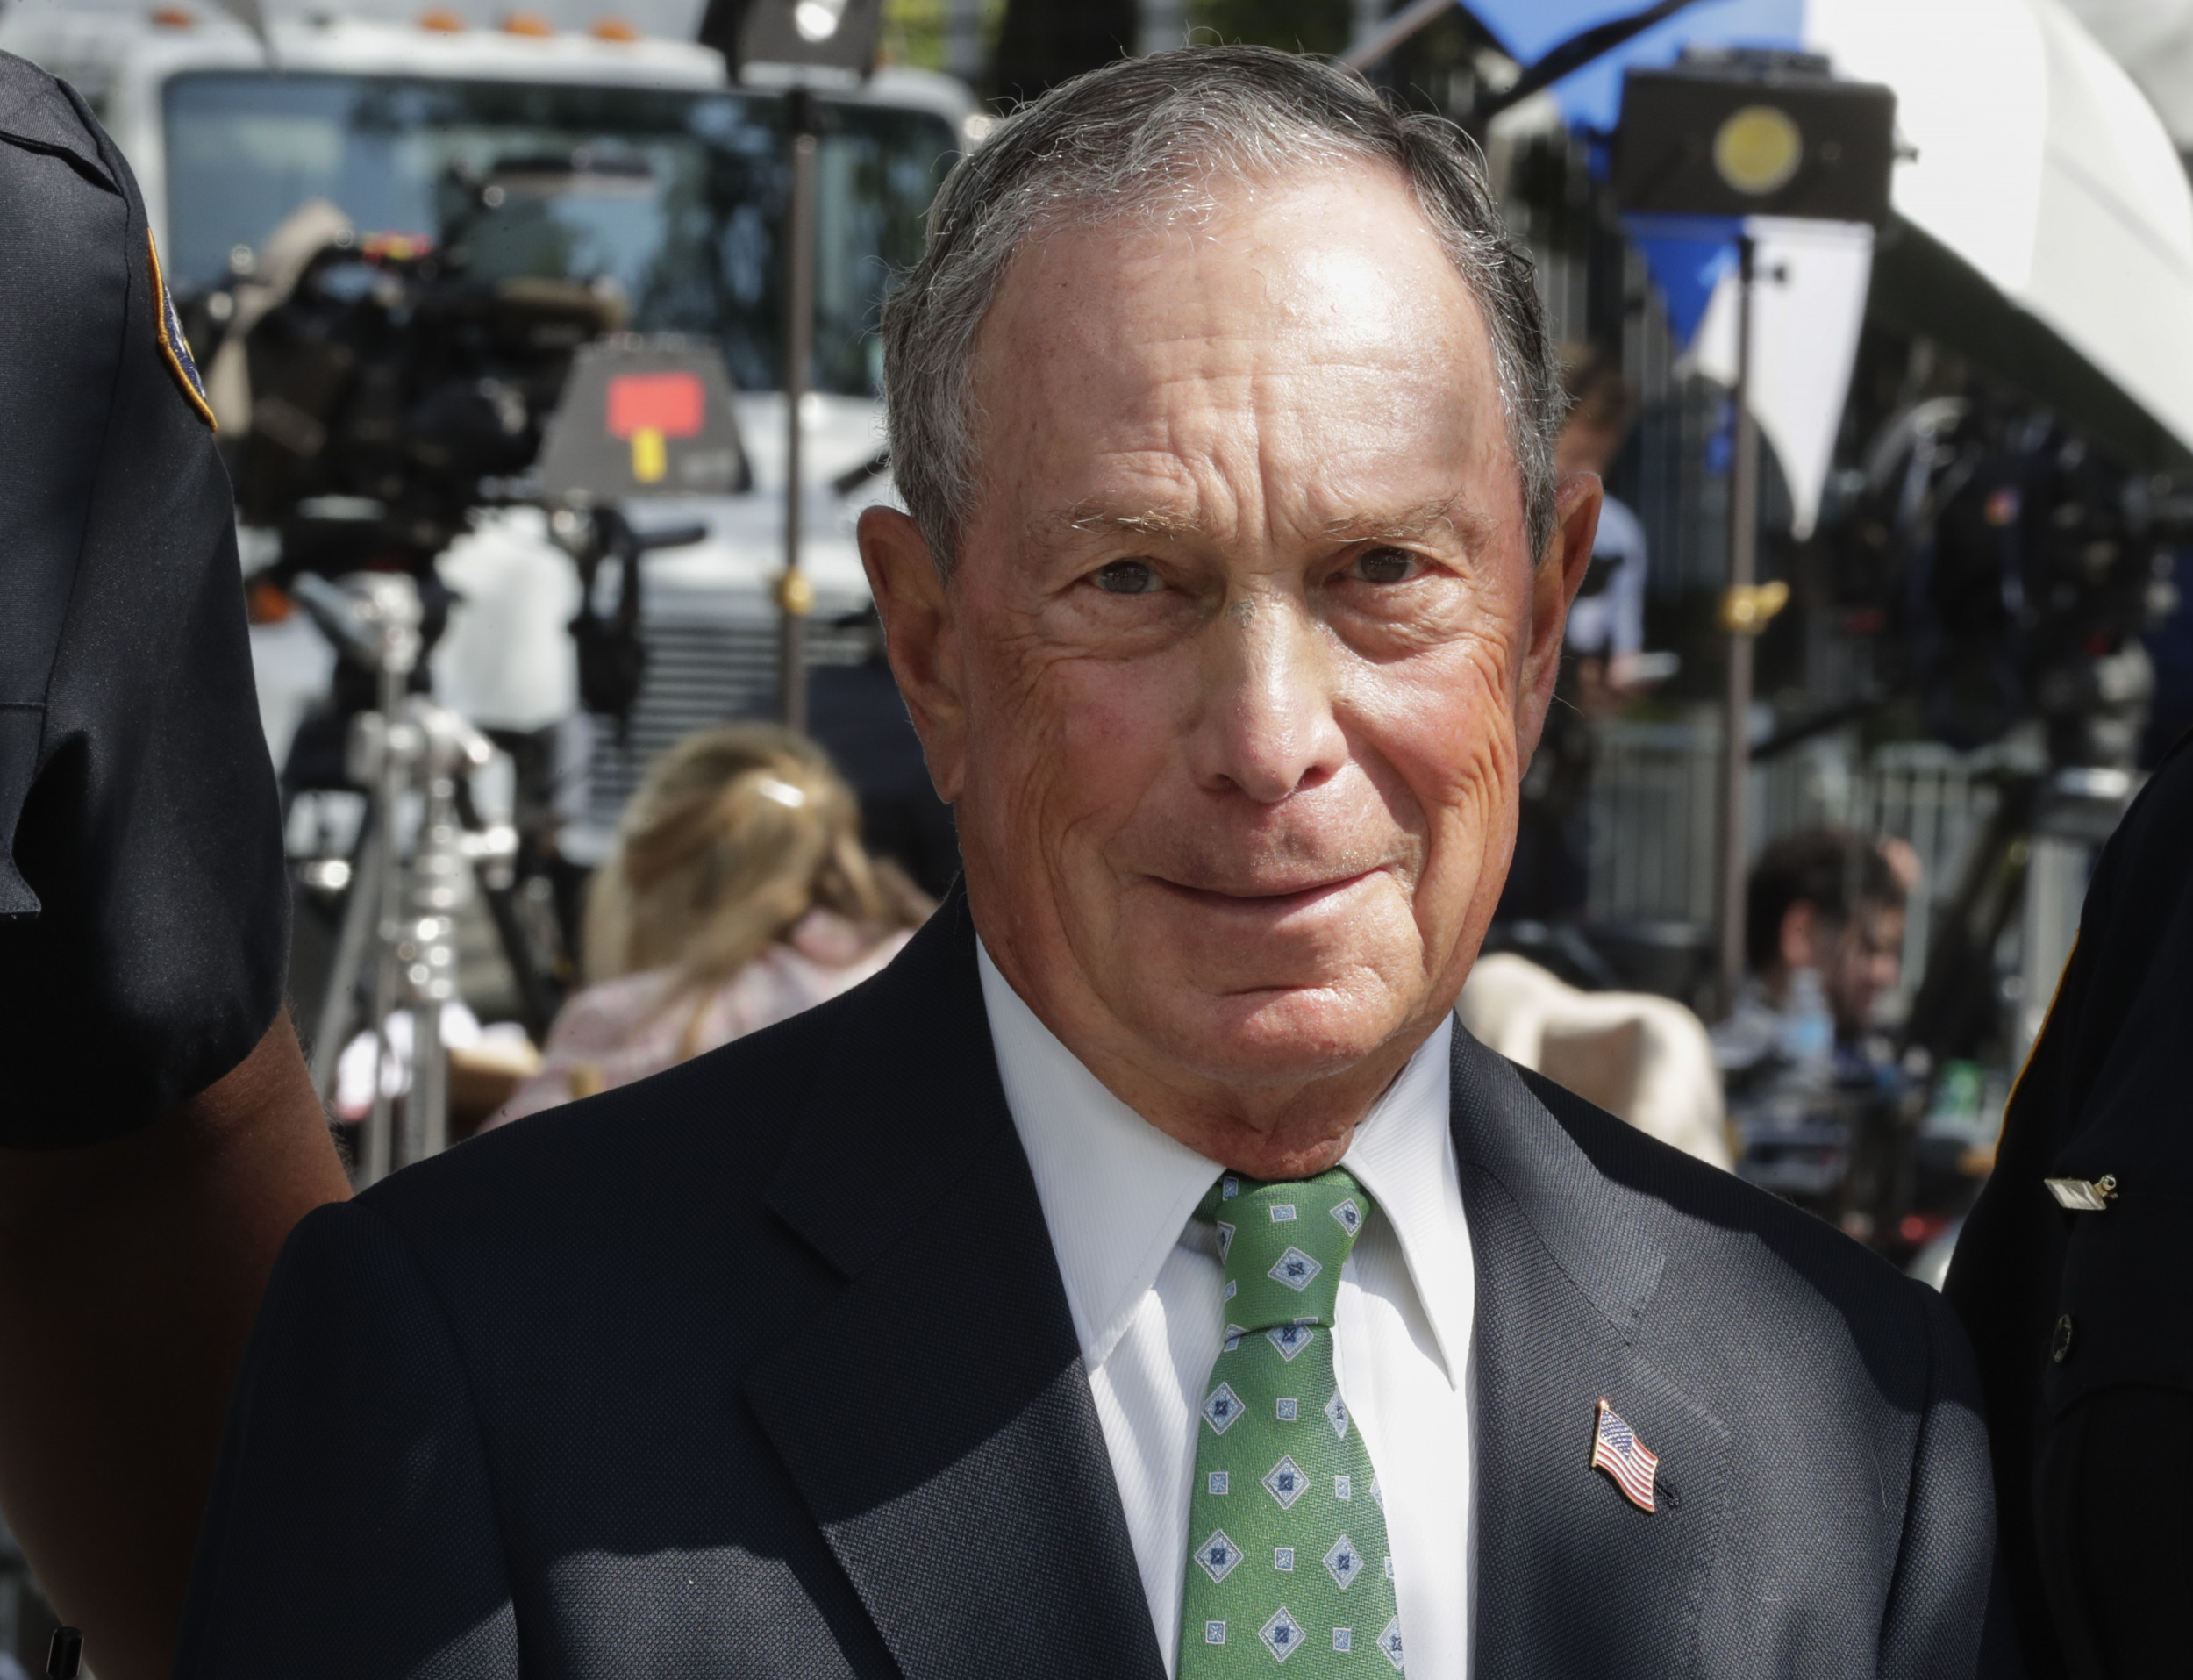 <b>George Conway Joins Others in Calling for Michael Bloomberg to Buy Fox News</b>